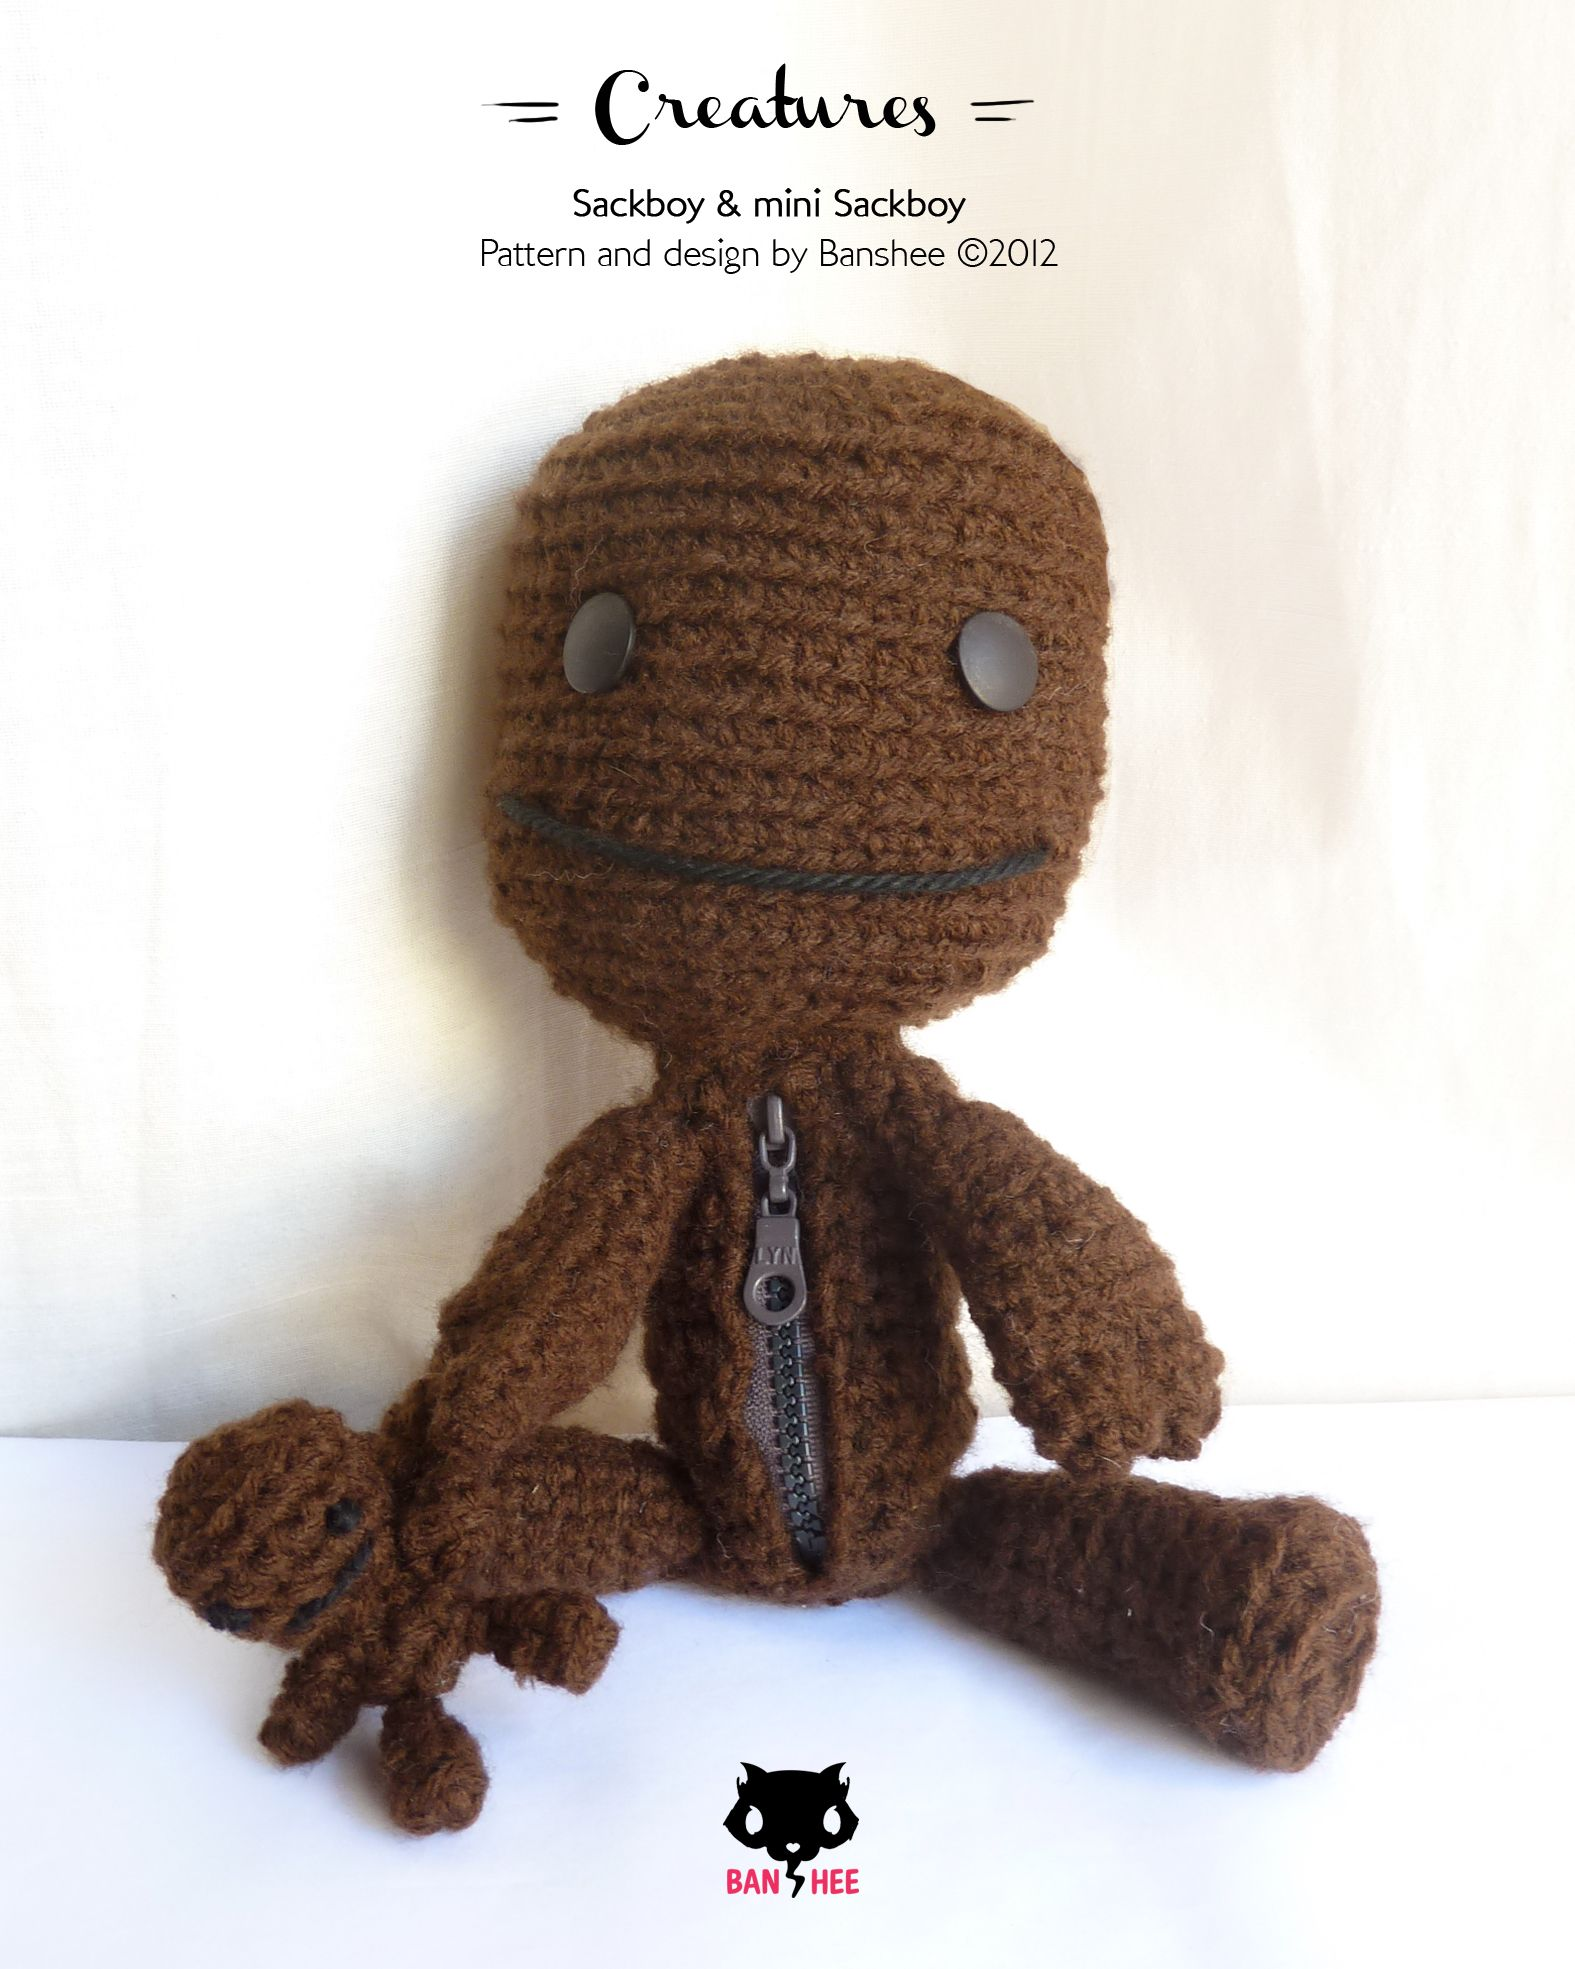 Sackboy & mini Sackboy - inspired by Little Big Planet Game ...